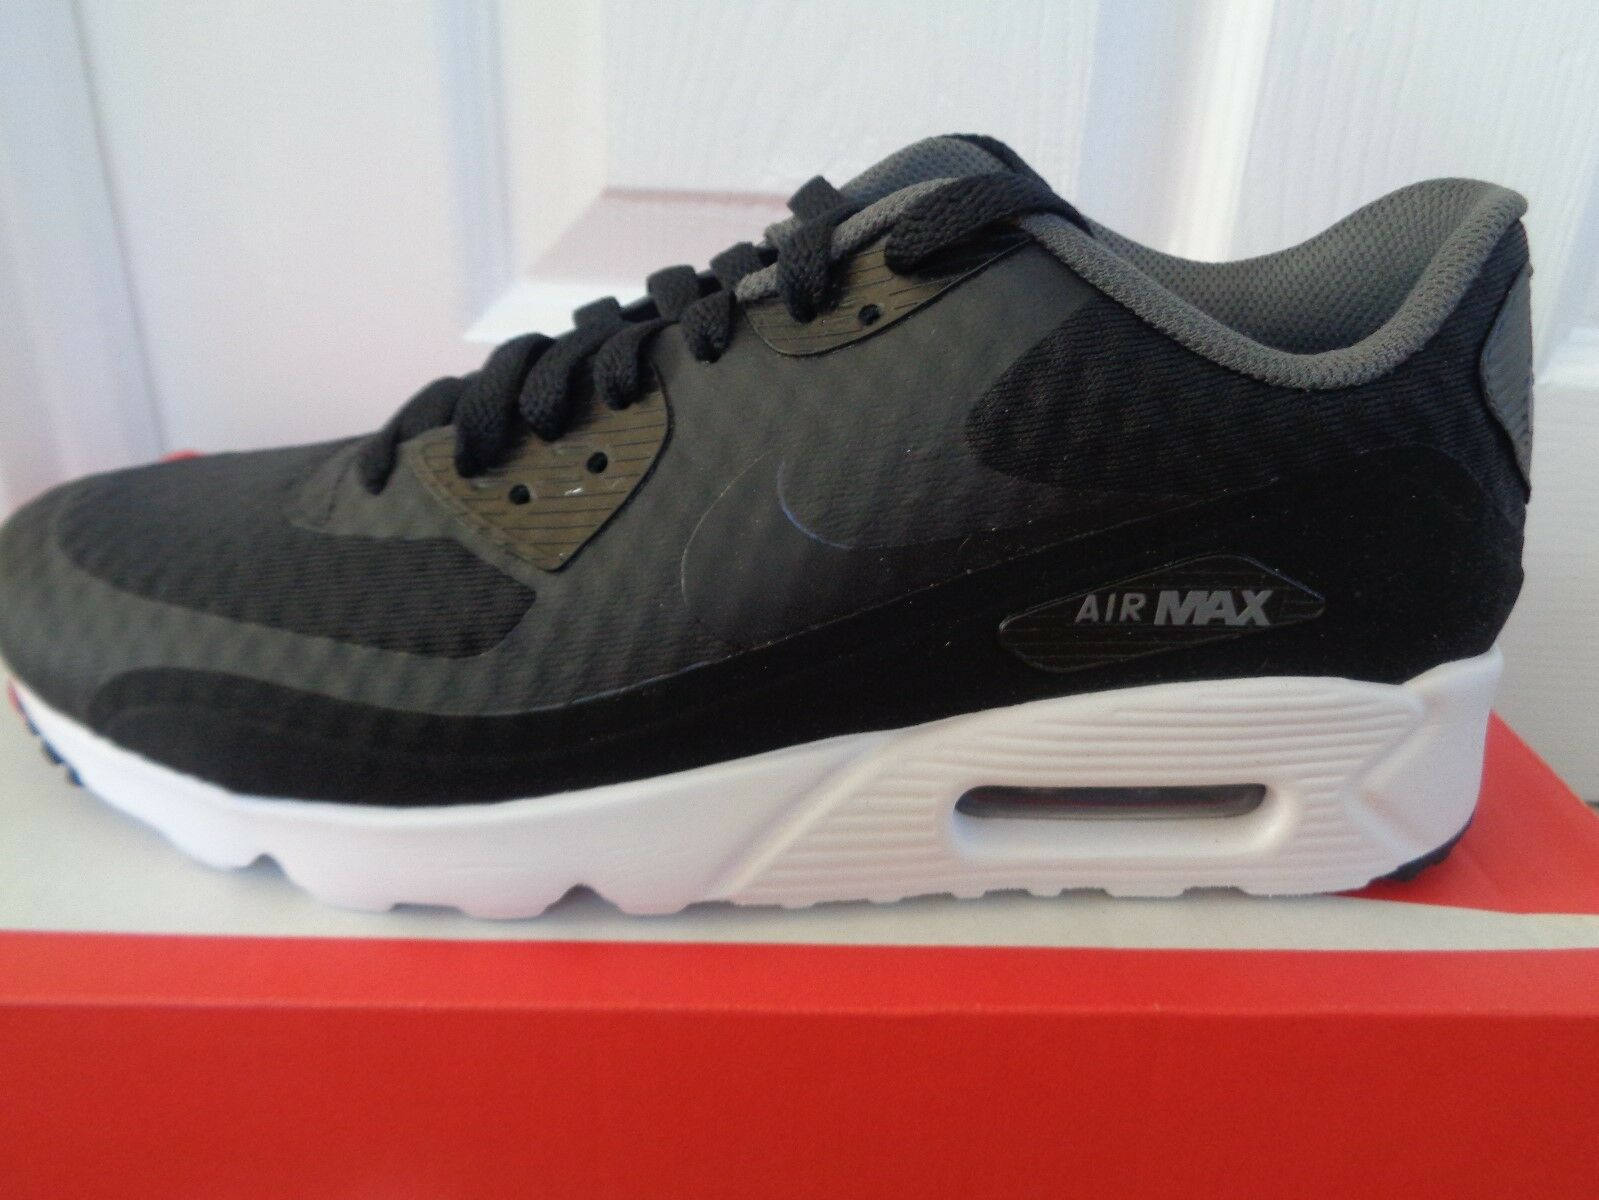 631a9a387ea93 Nike Air Max 90 Ultra Essential trainers trainers trainers 819474 013 eu  40.5 us 7.5 NEW 72297c